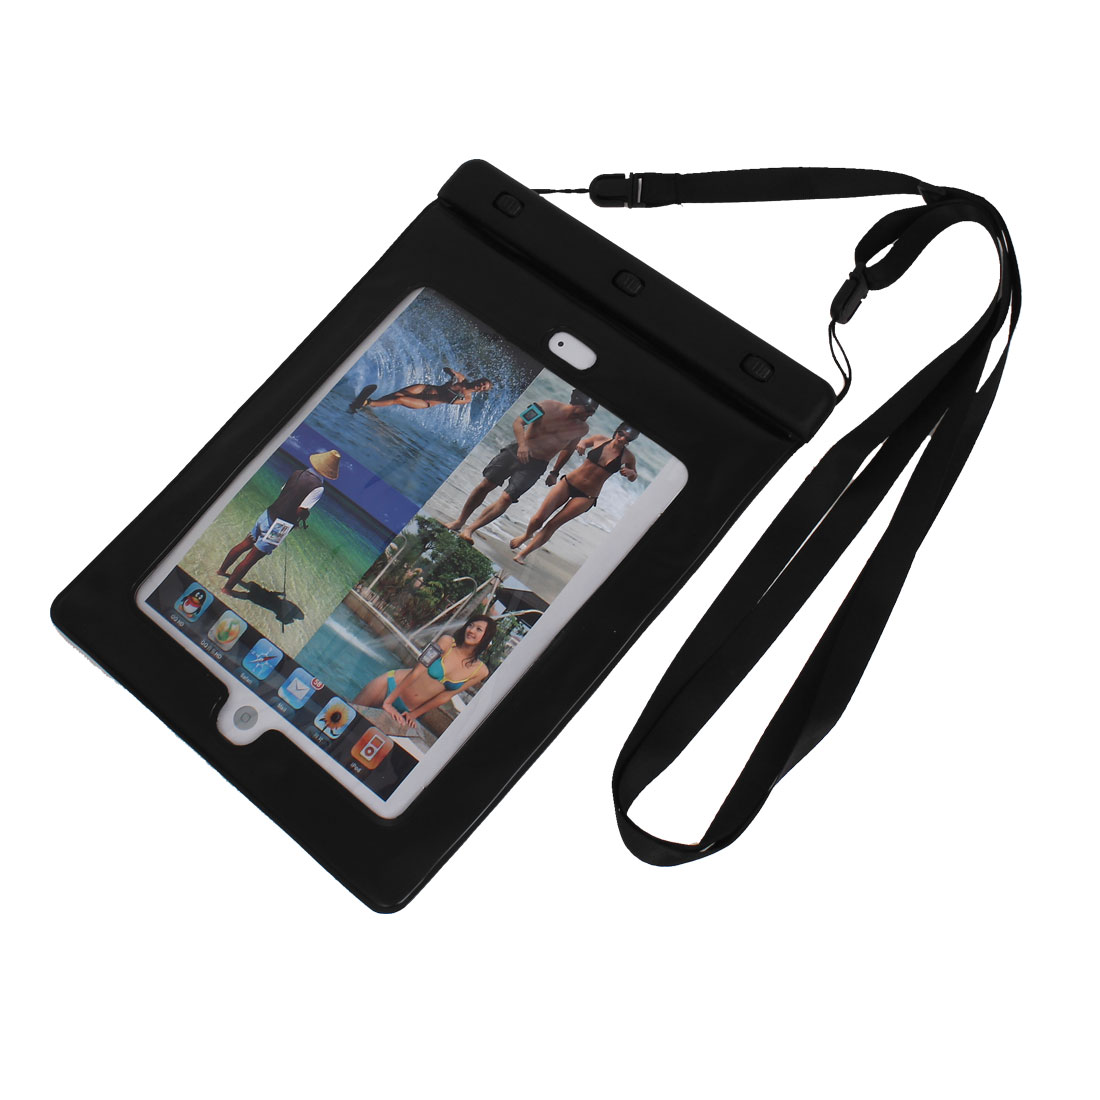 Waterproof Pouch Bag Case Black for iPad Air 2 w Neck Strap Earphone